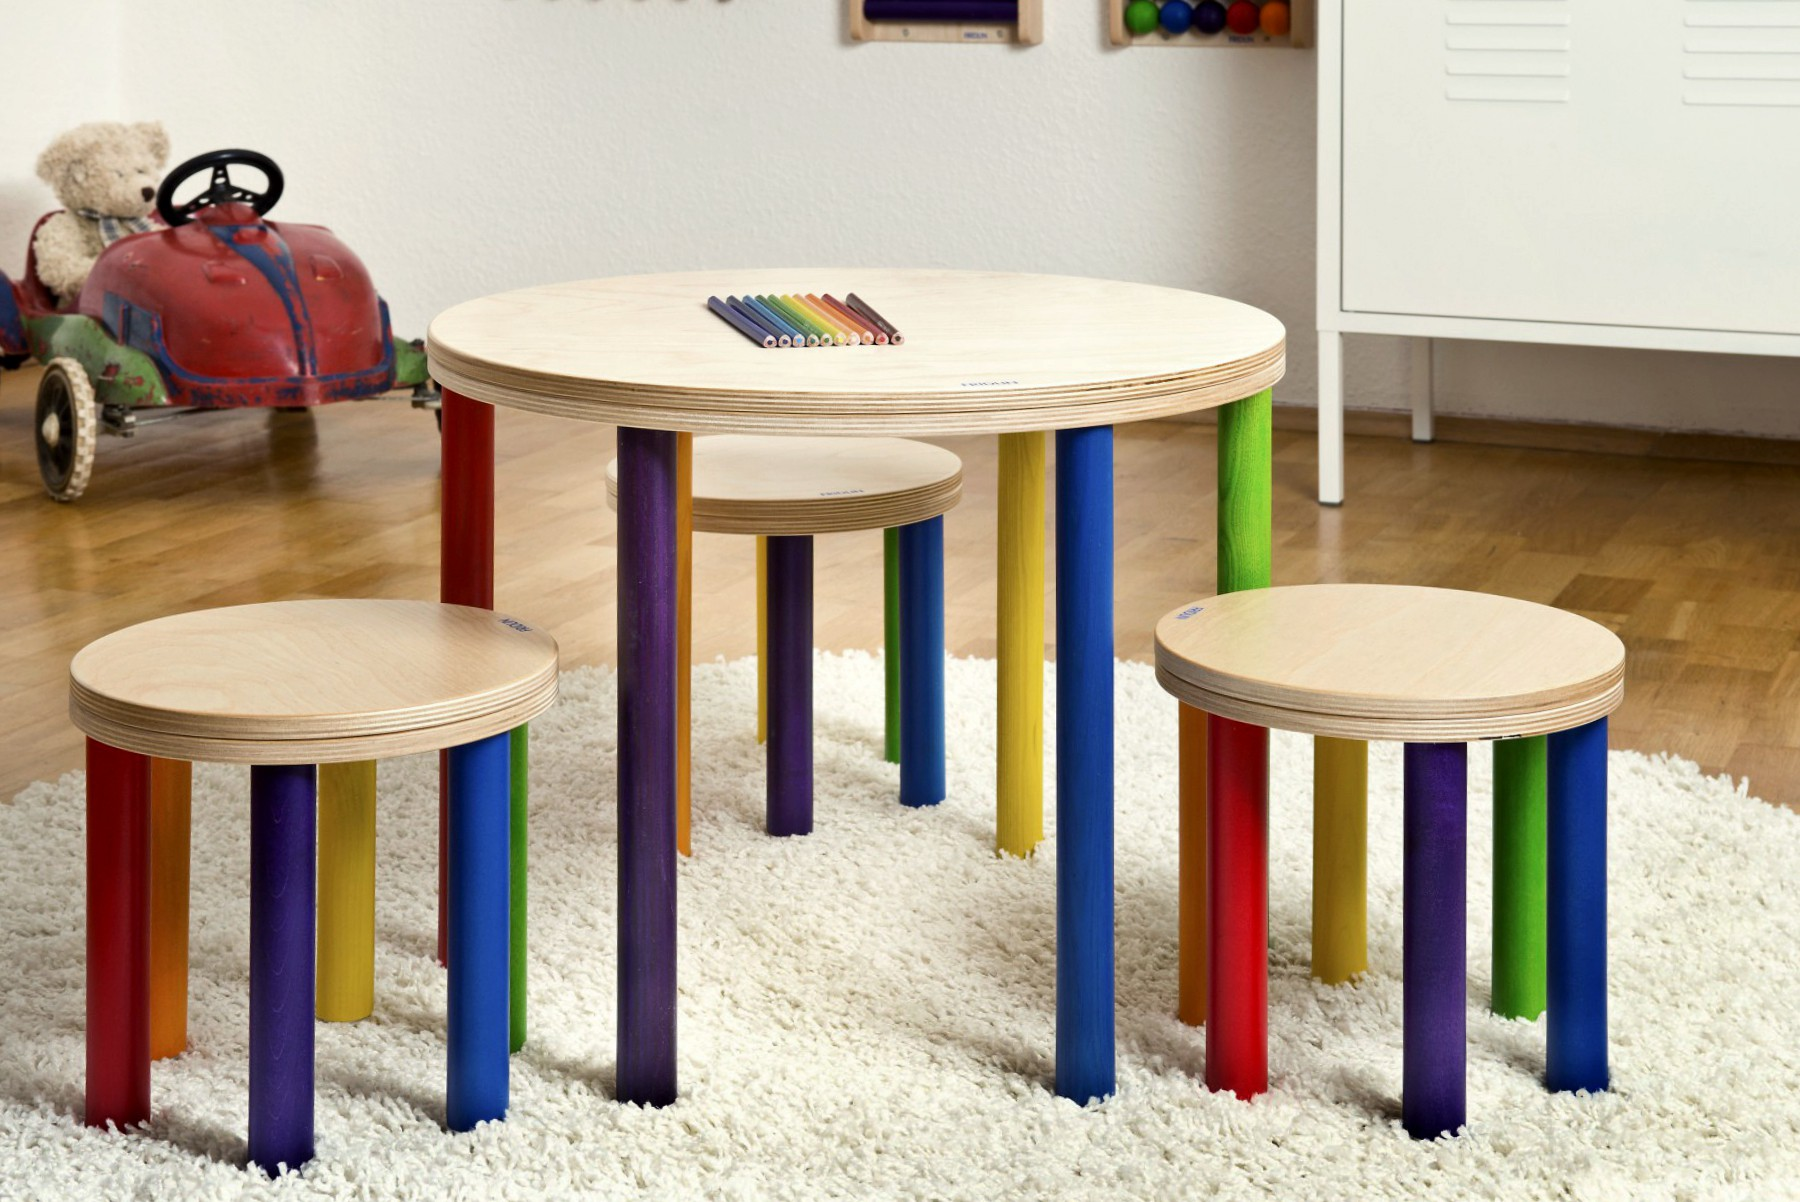 Set Tisch & 3 Hocker FRIDLIN